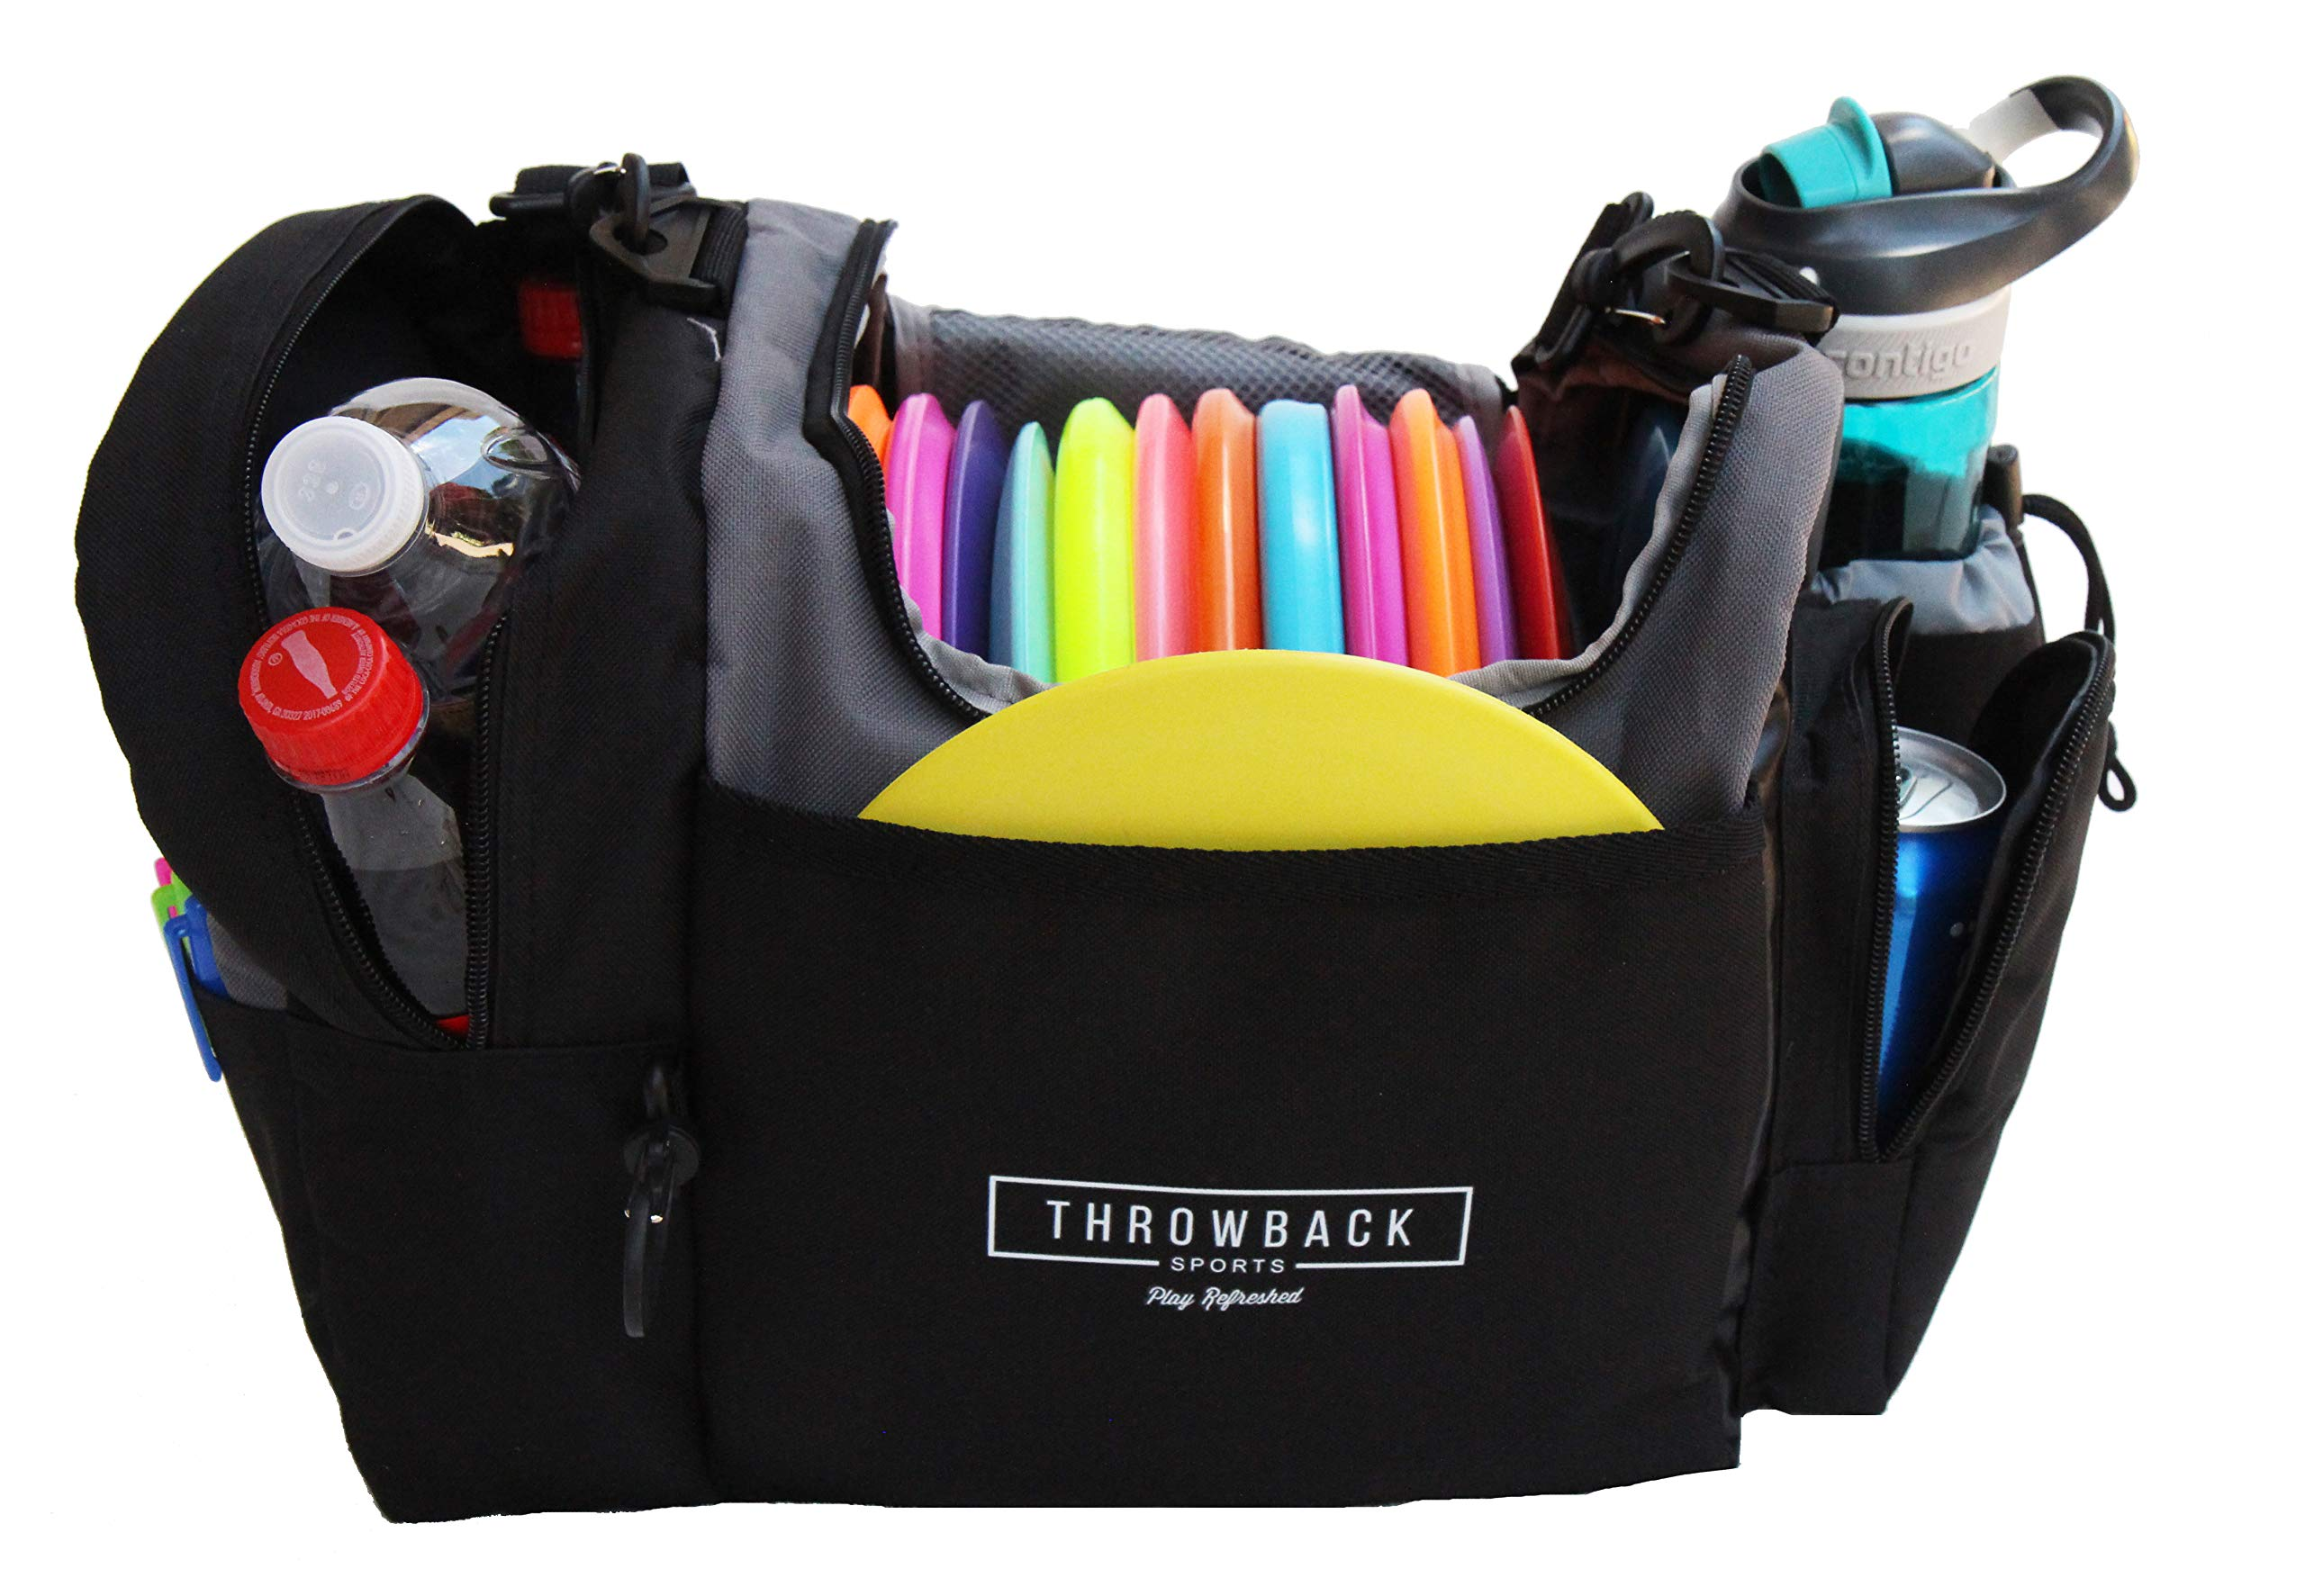 The Throwback Sack - Frisbee Disc Golf Bag with Cooler and Extra Padding, Comfortable Strap - Holds 12-15 Discs and 6 Cold Drinks by Throwback Sports